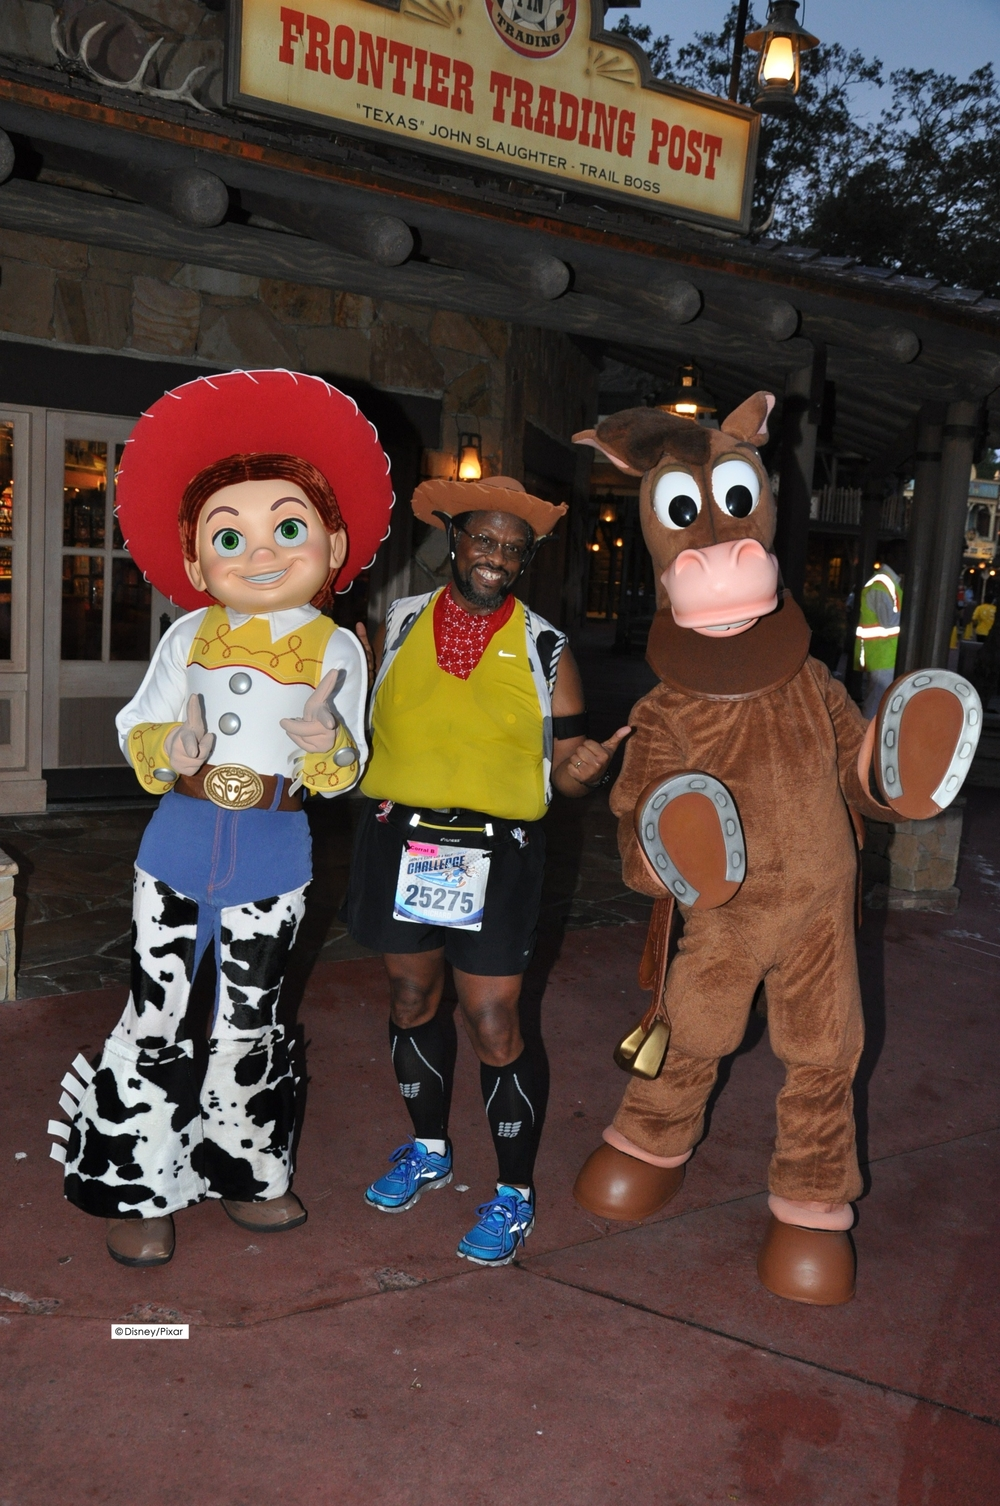 Got a great character photo op with Jessie and Bullseye as I was running through the Magic Kingdom during the Disney Half Marathon on Saturday morning.